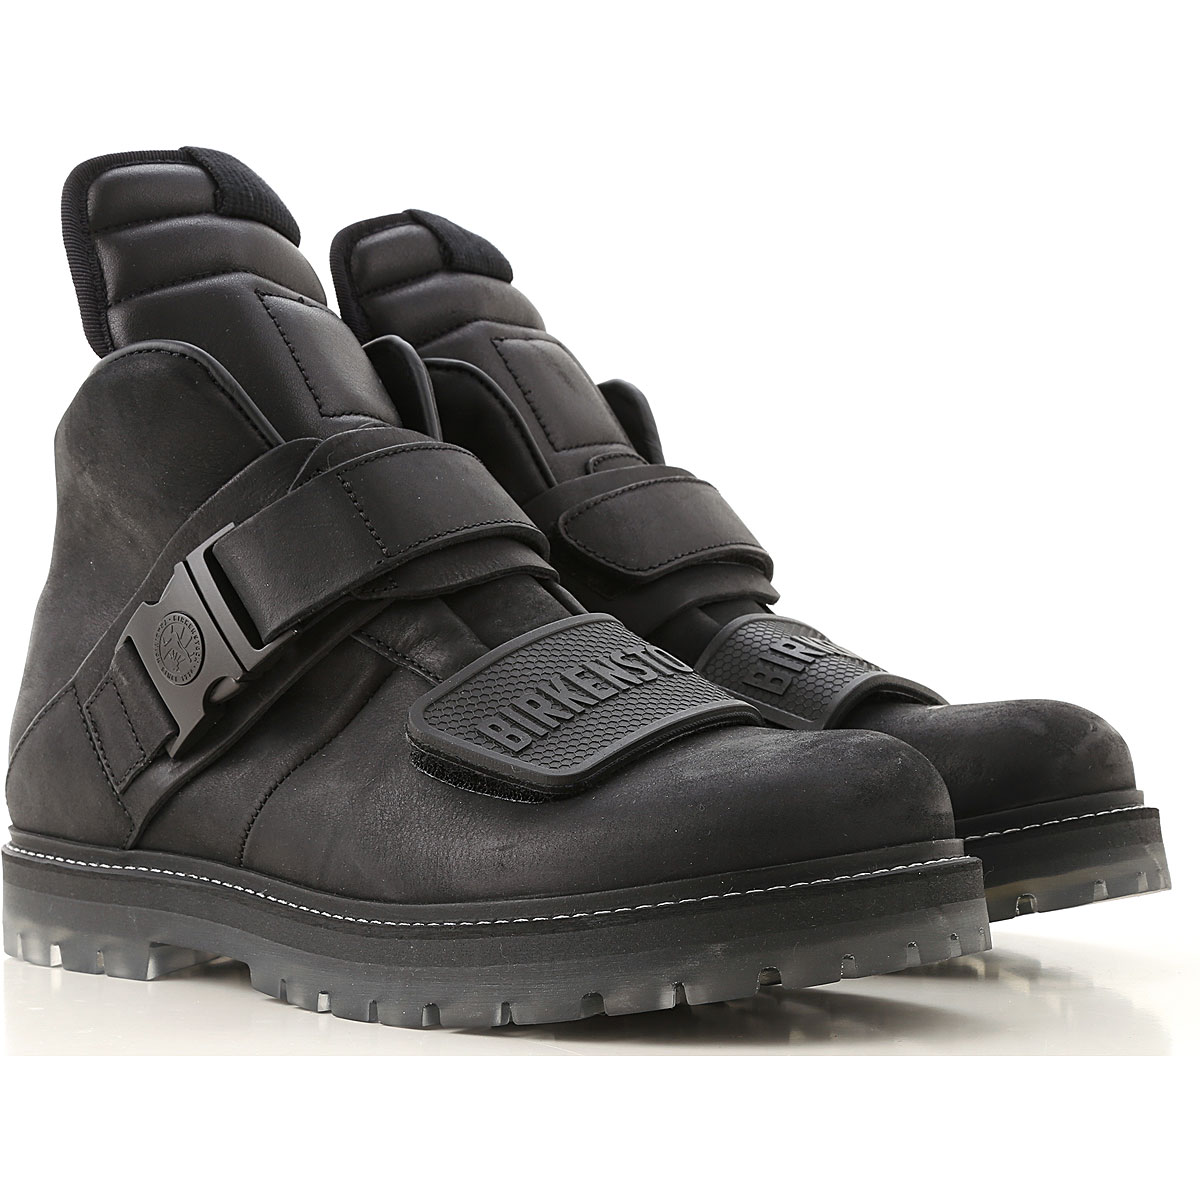 Rick Owens Boots for Men, Booties On Sale in Outlet, Black, Leather, 2019, 7.5 8 9